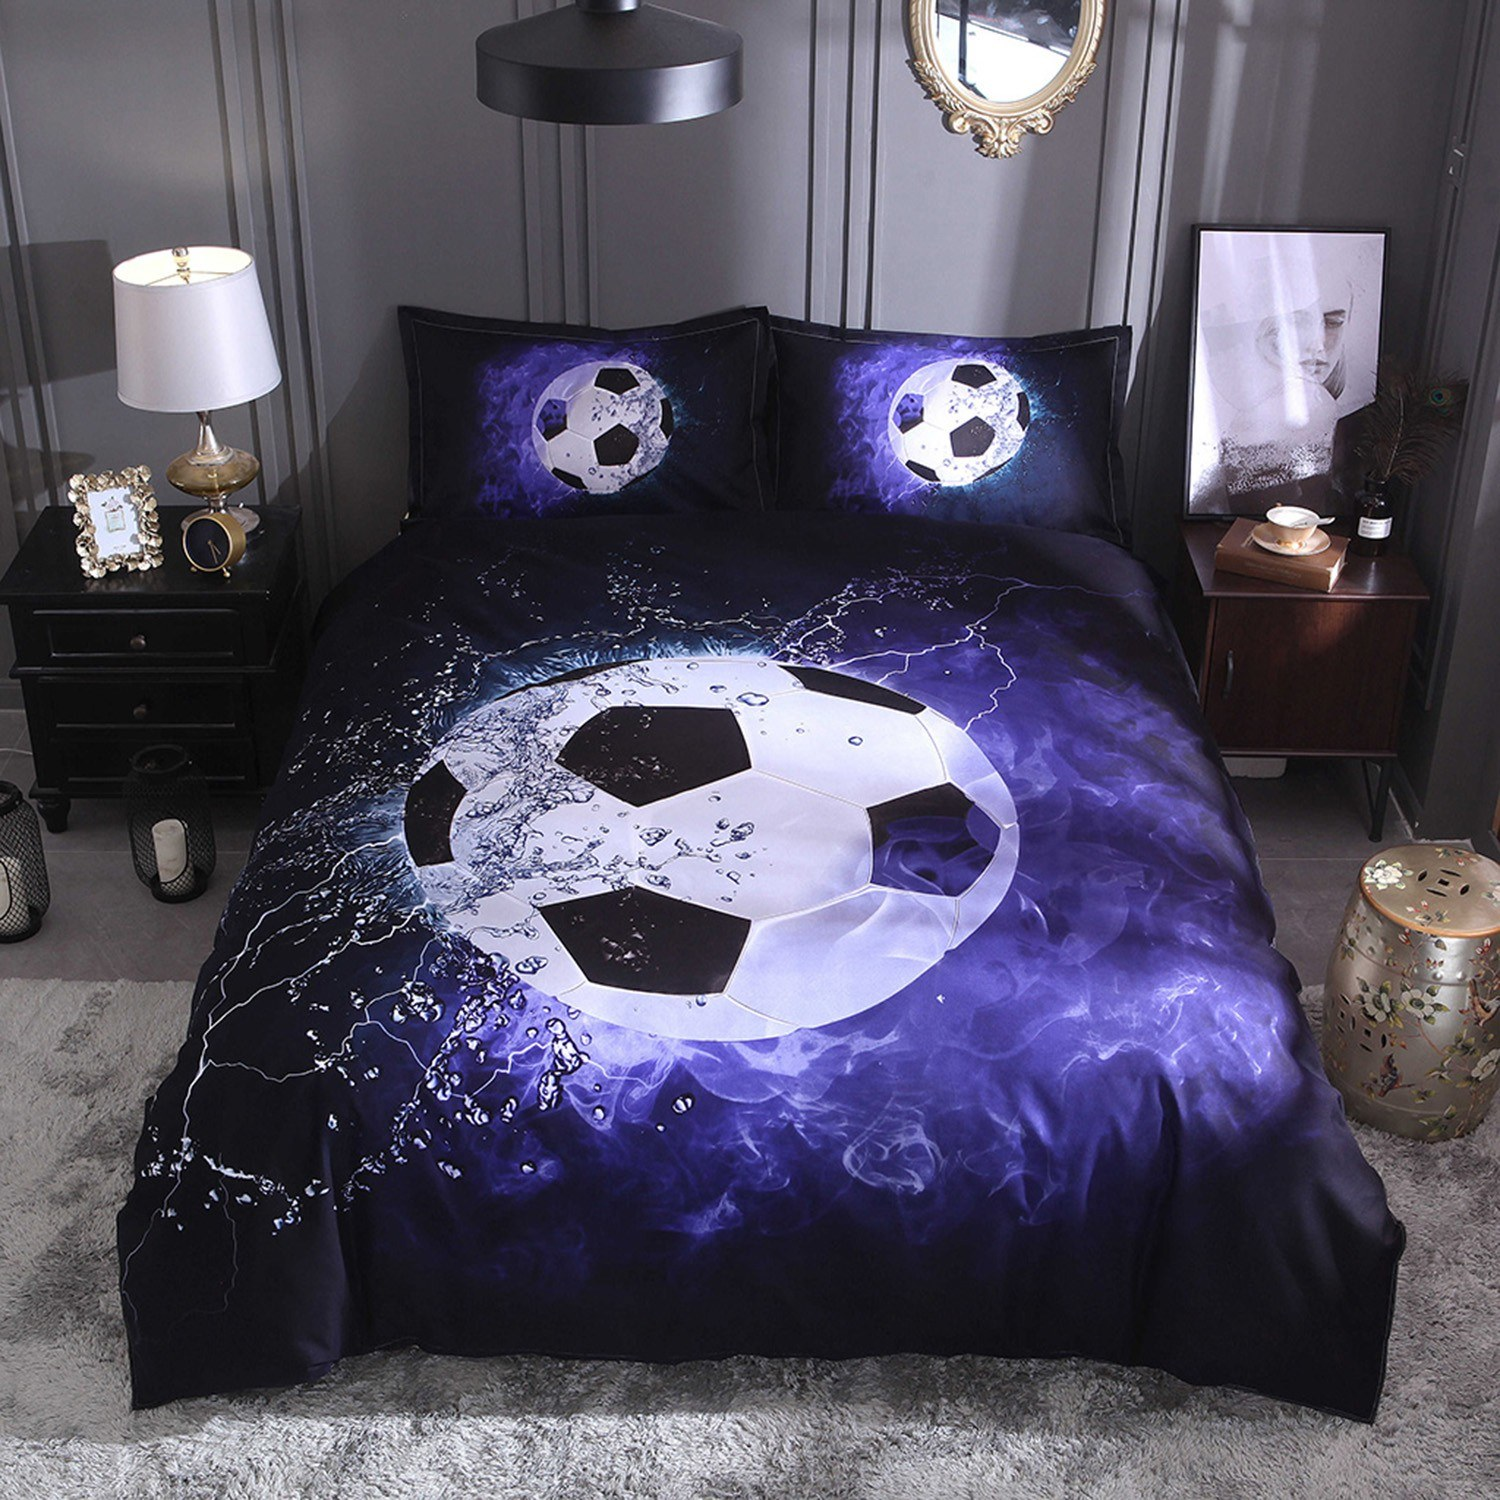 Bedding Set Football Court Pillowcase Bed Sheet Bed Cover Soft And Comfortable 2/3 pieces